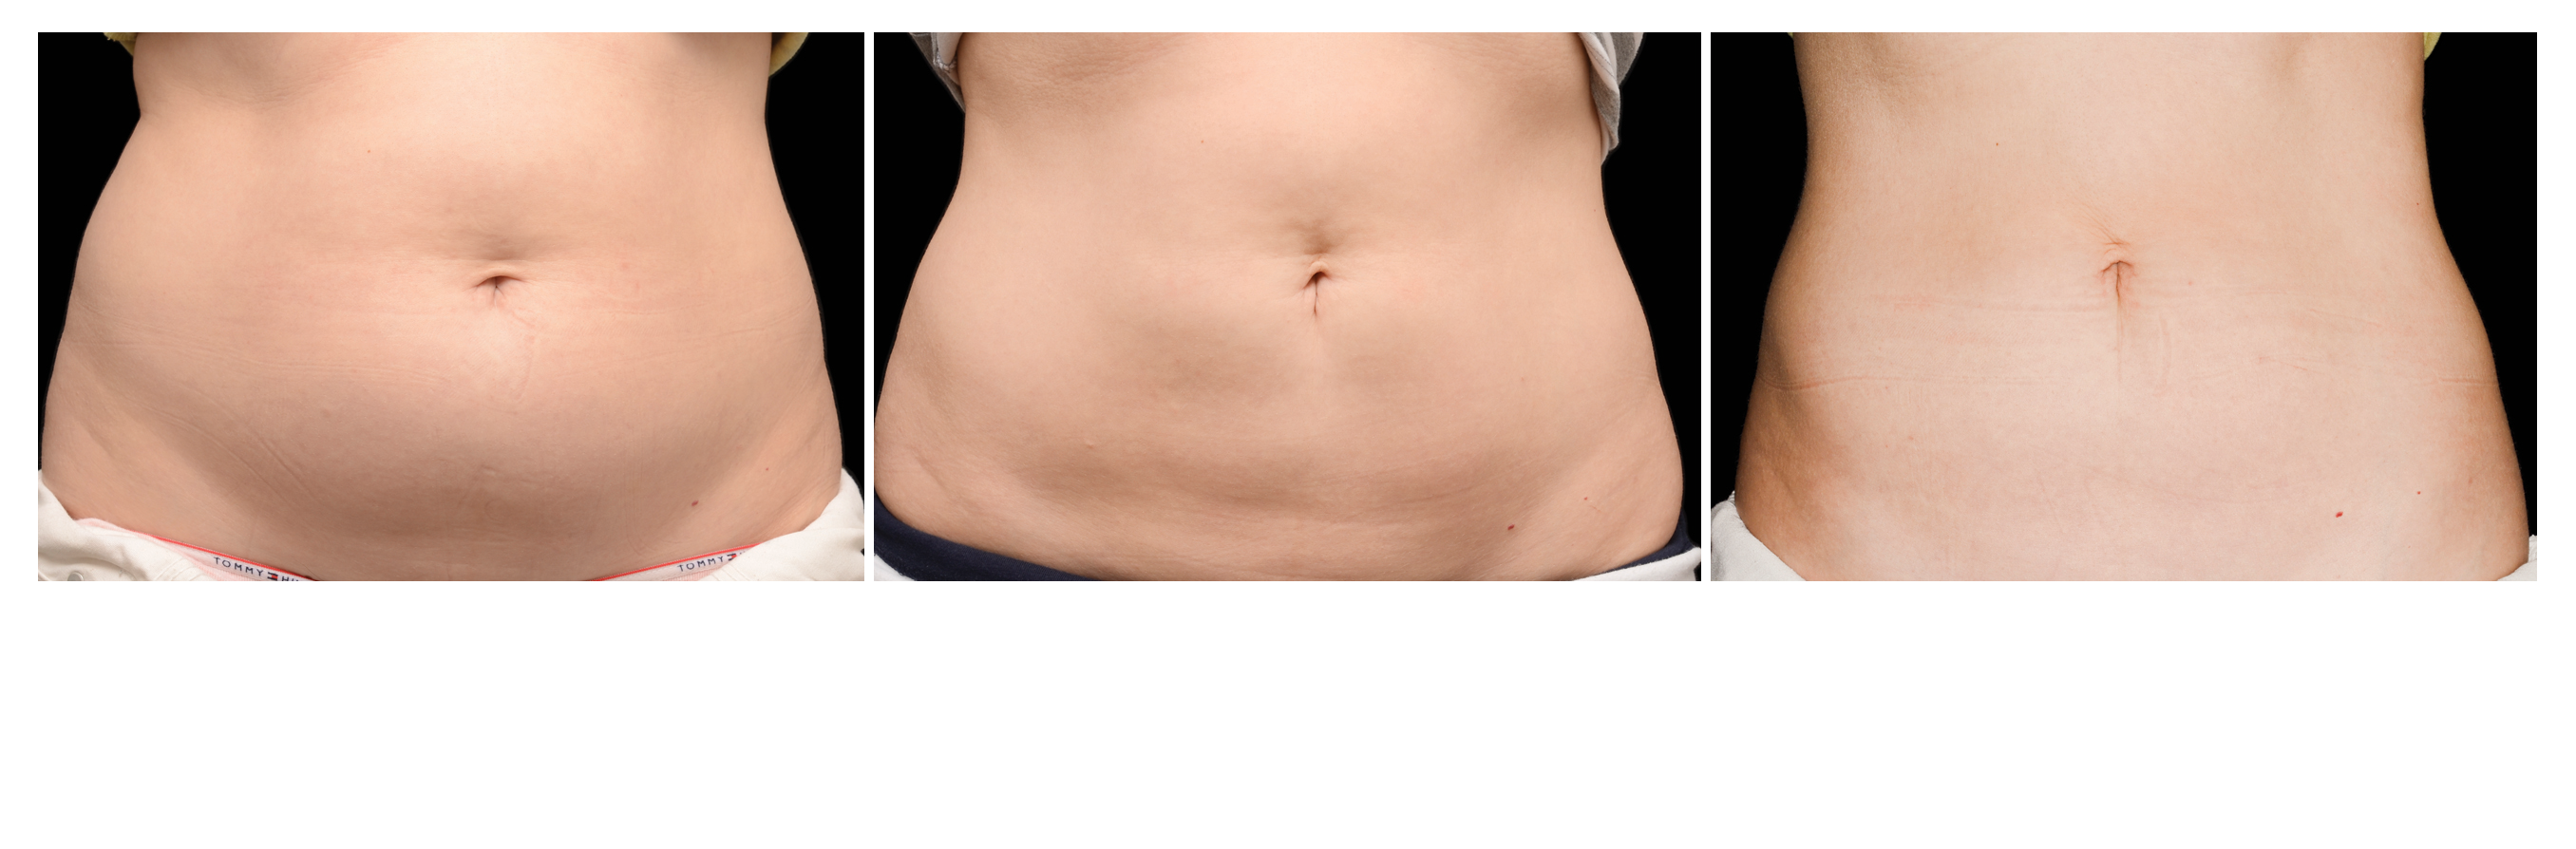 before and after CoolSculpting sessions